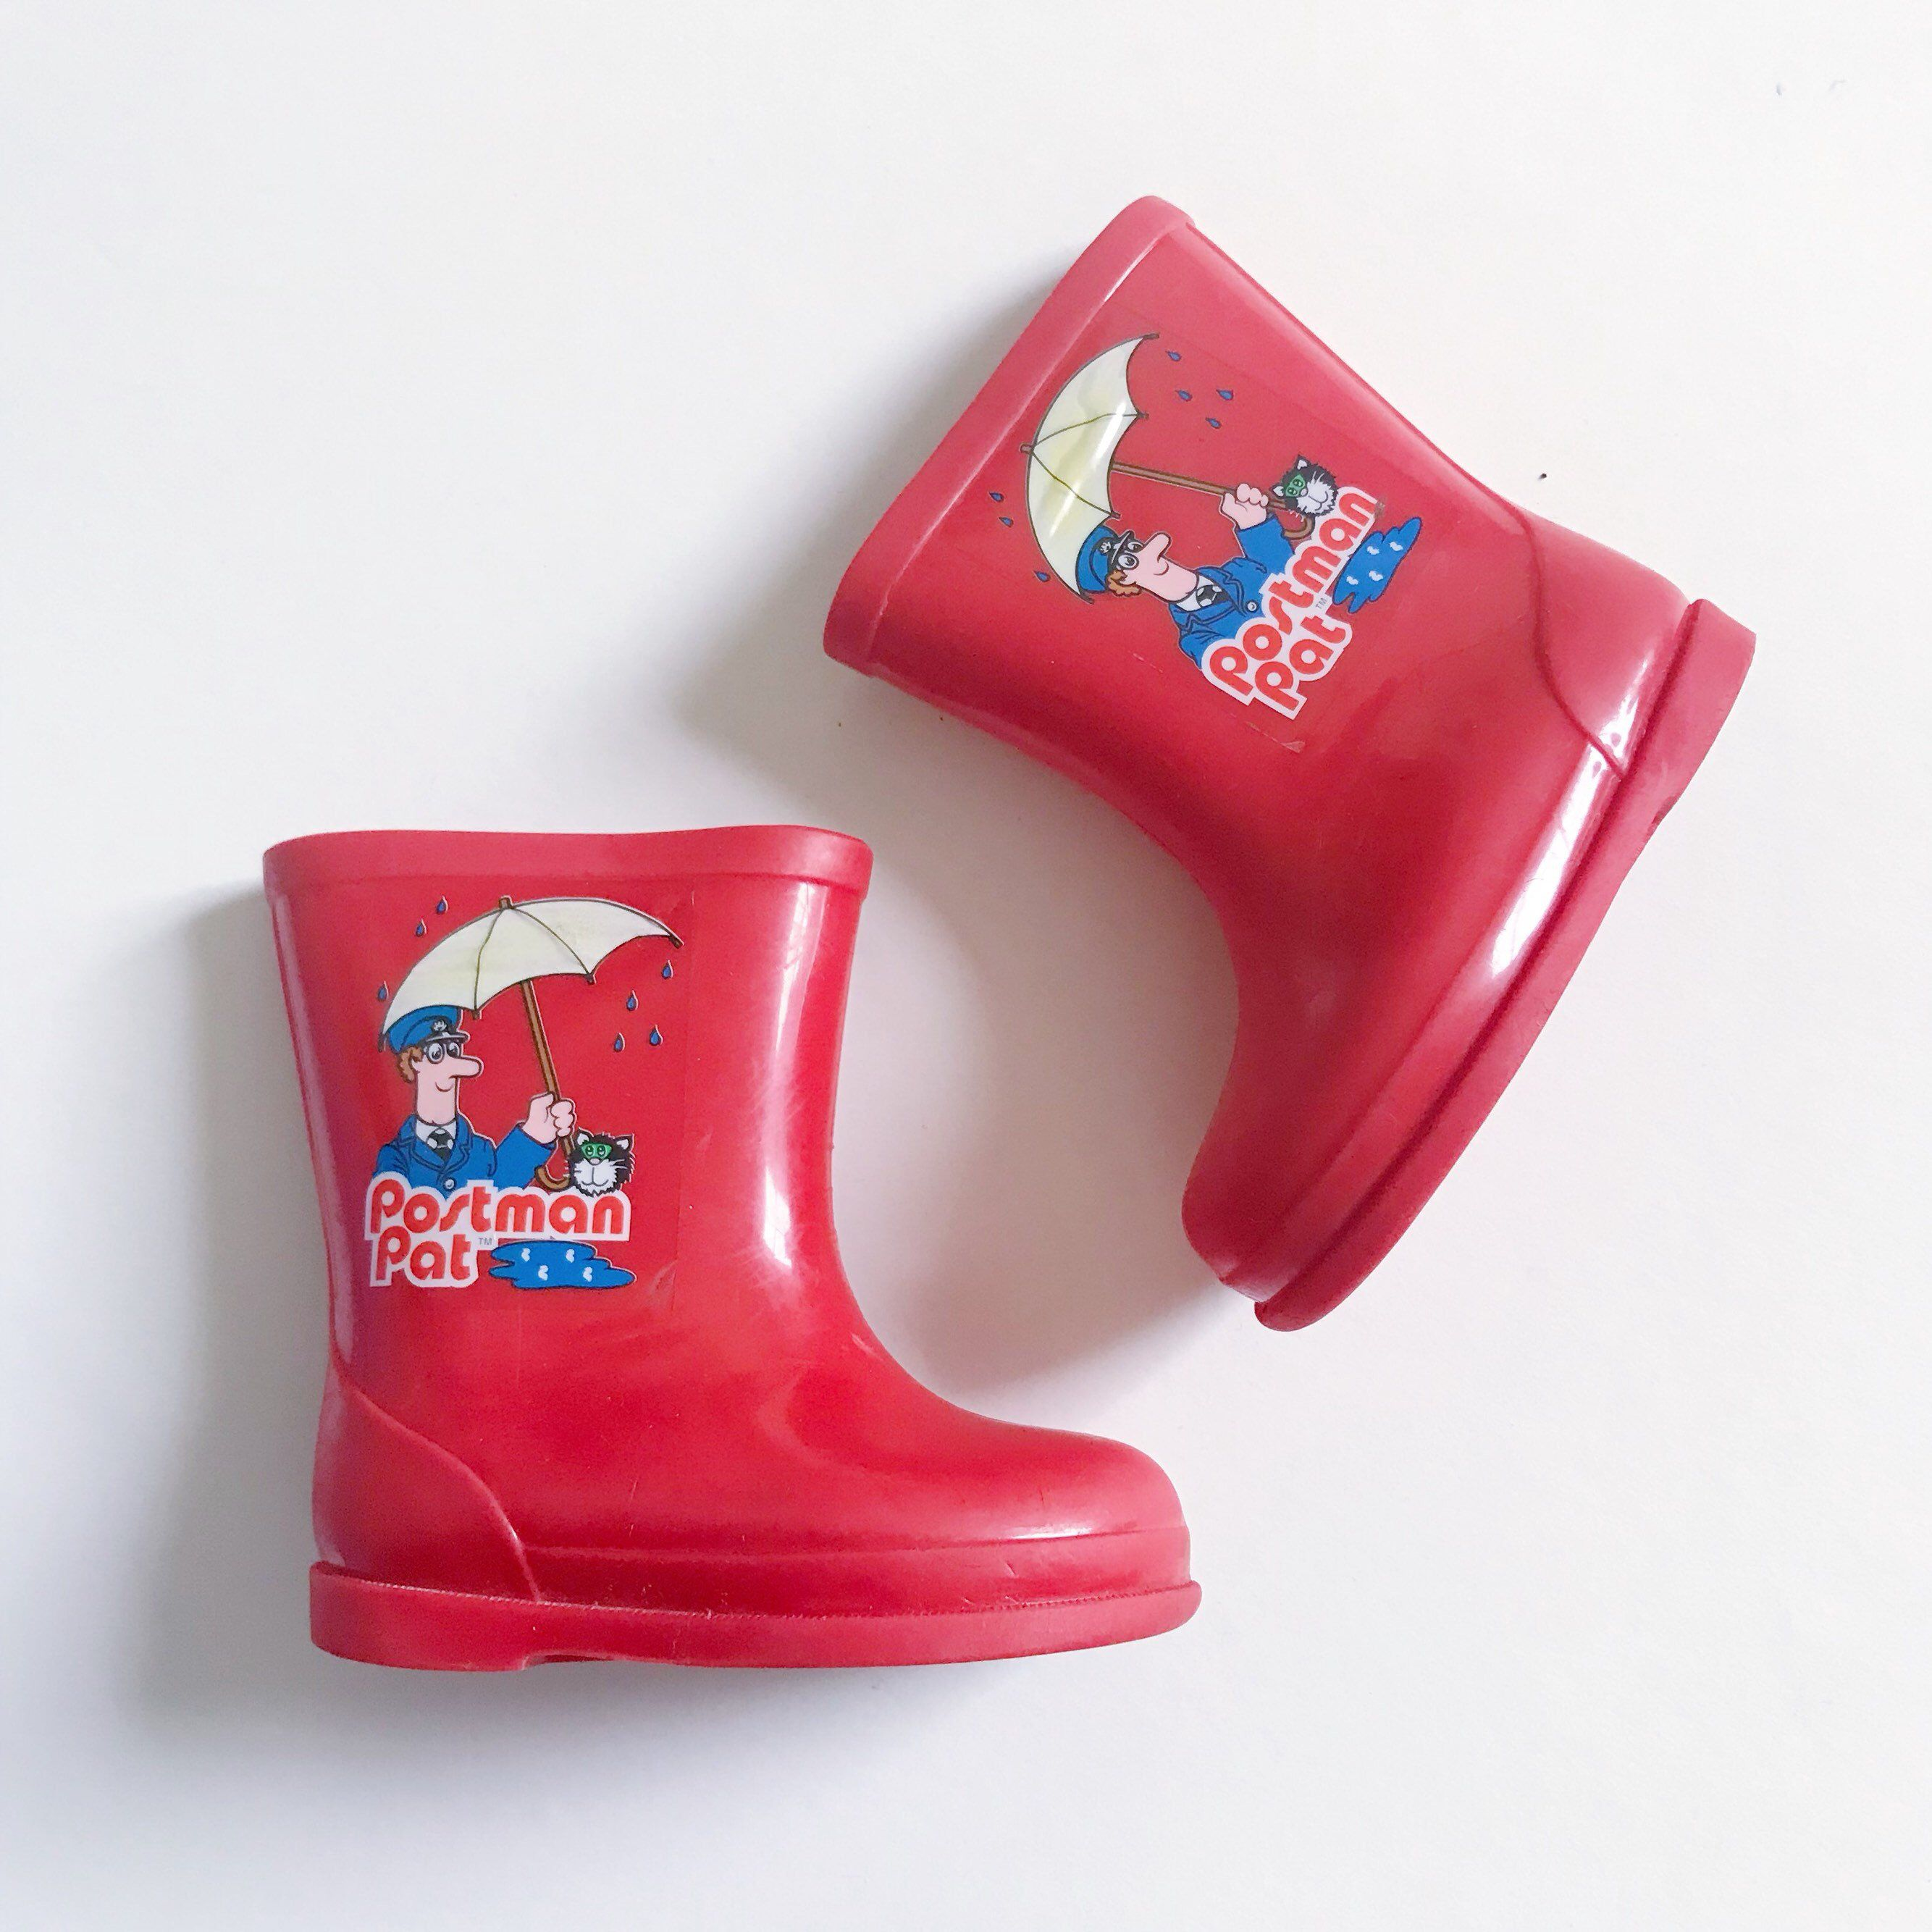 Vintage toddler wellies wellingtons by